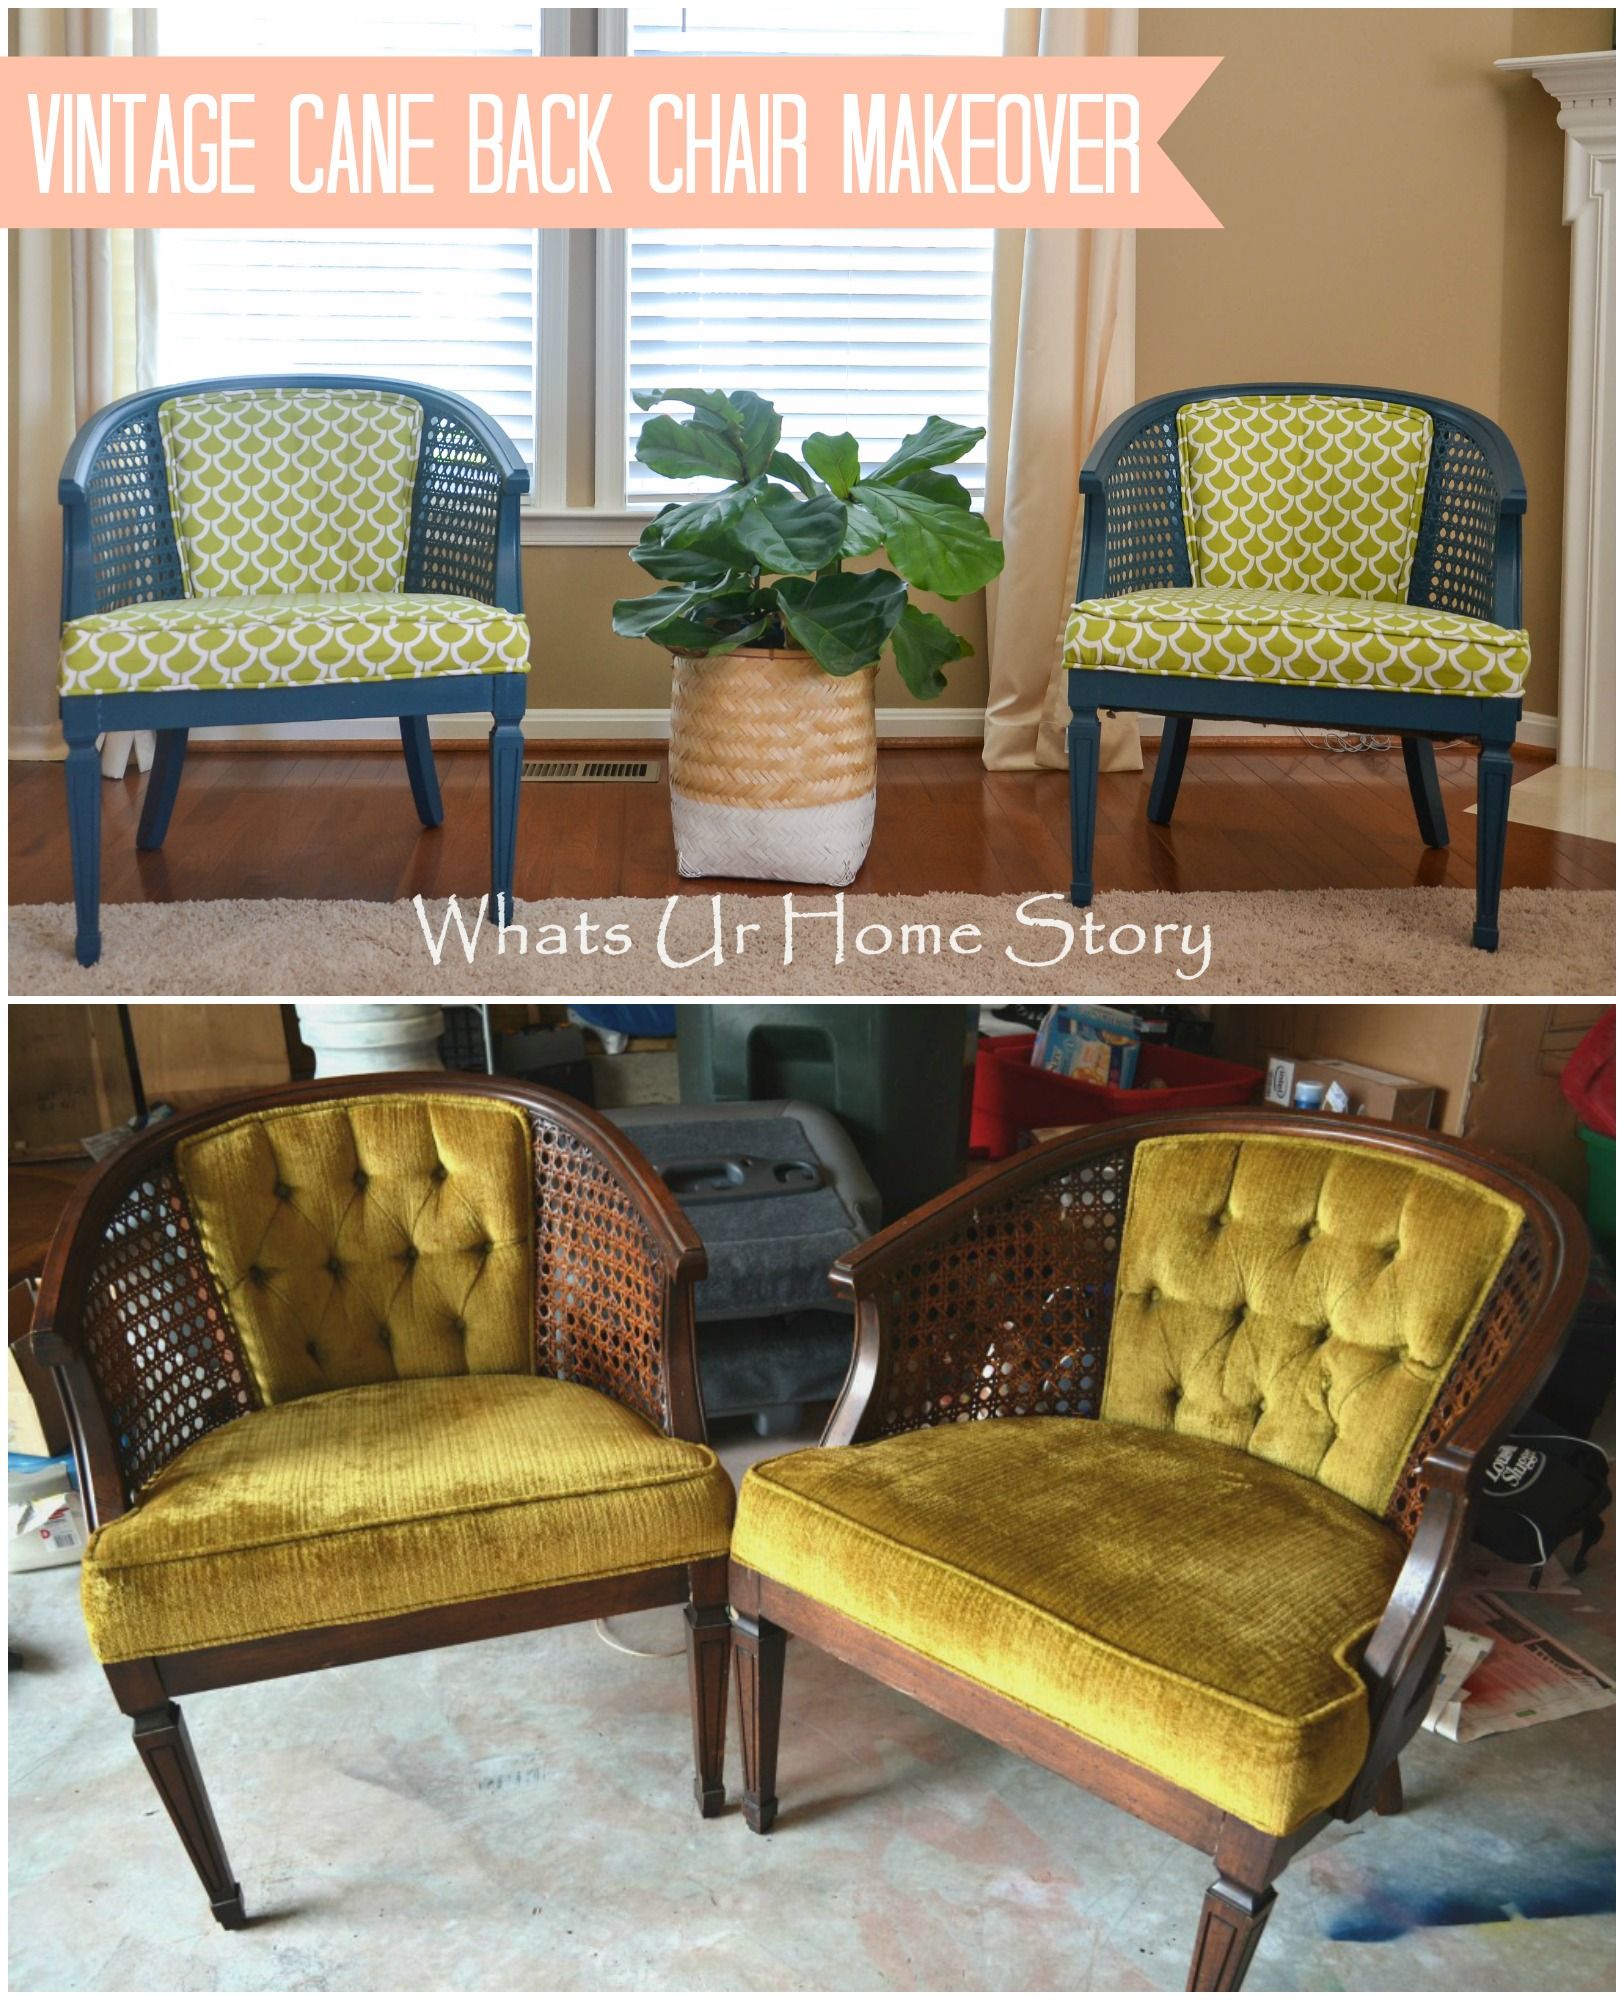 How to Reupholster a Chair Tutorial & How to Reupholster a Chair Tutorial | Whats Ur Home Story